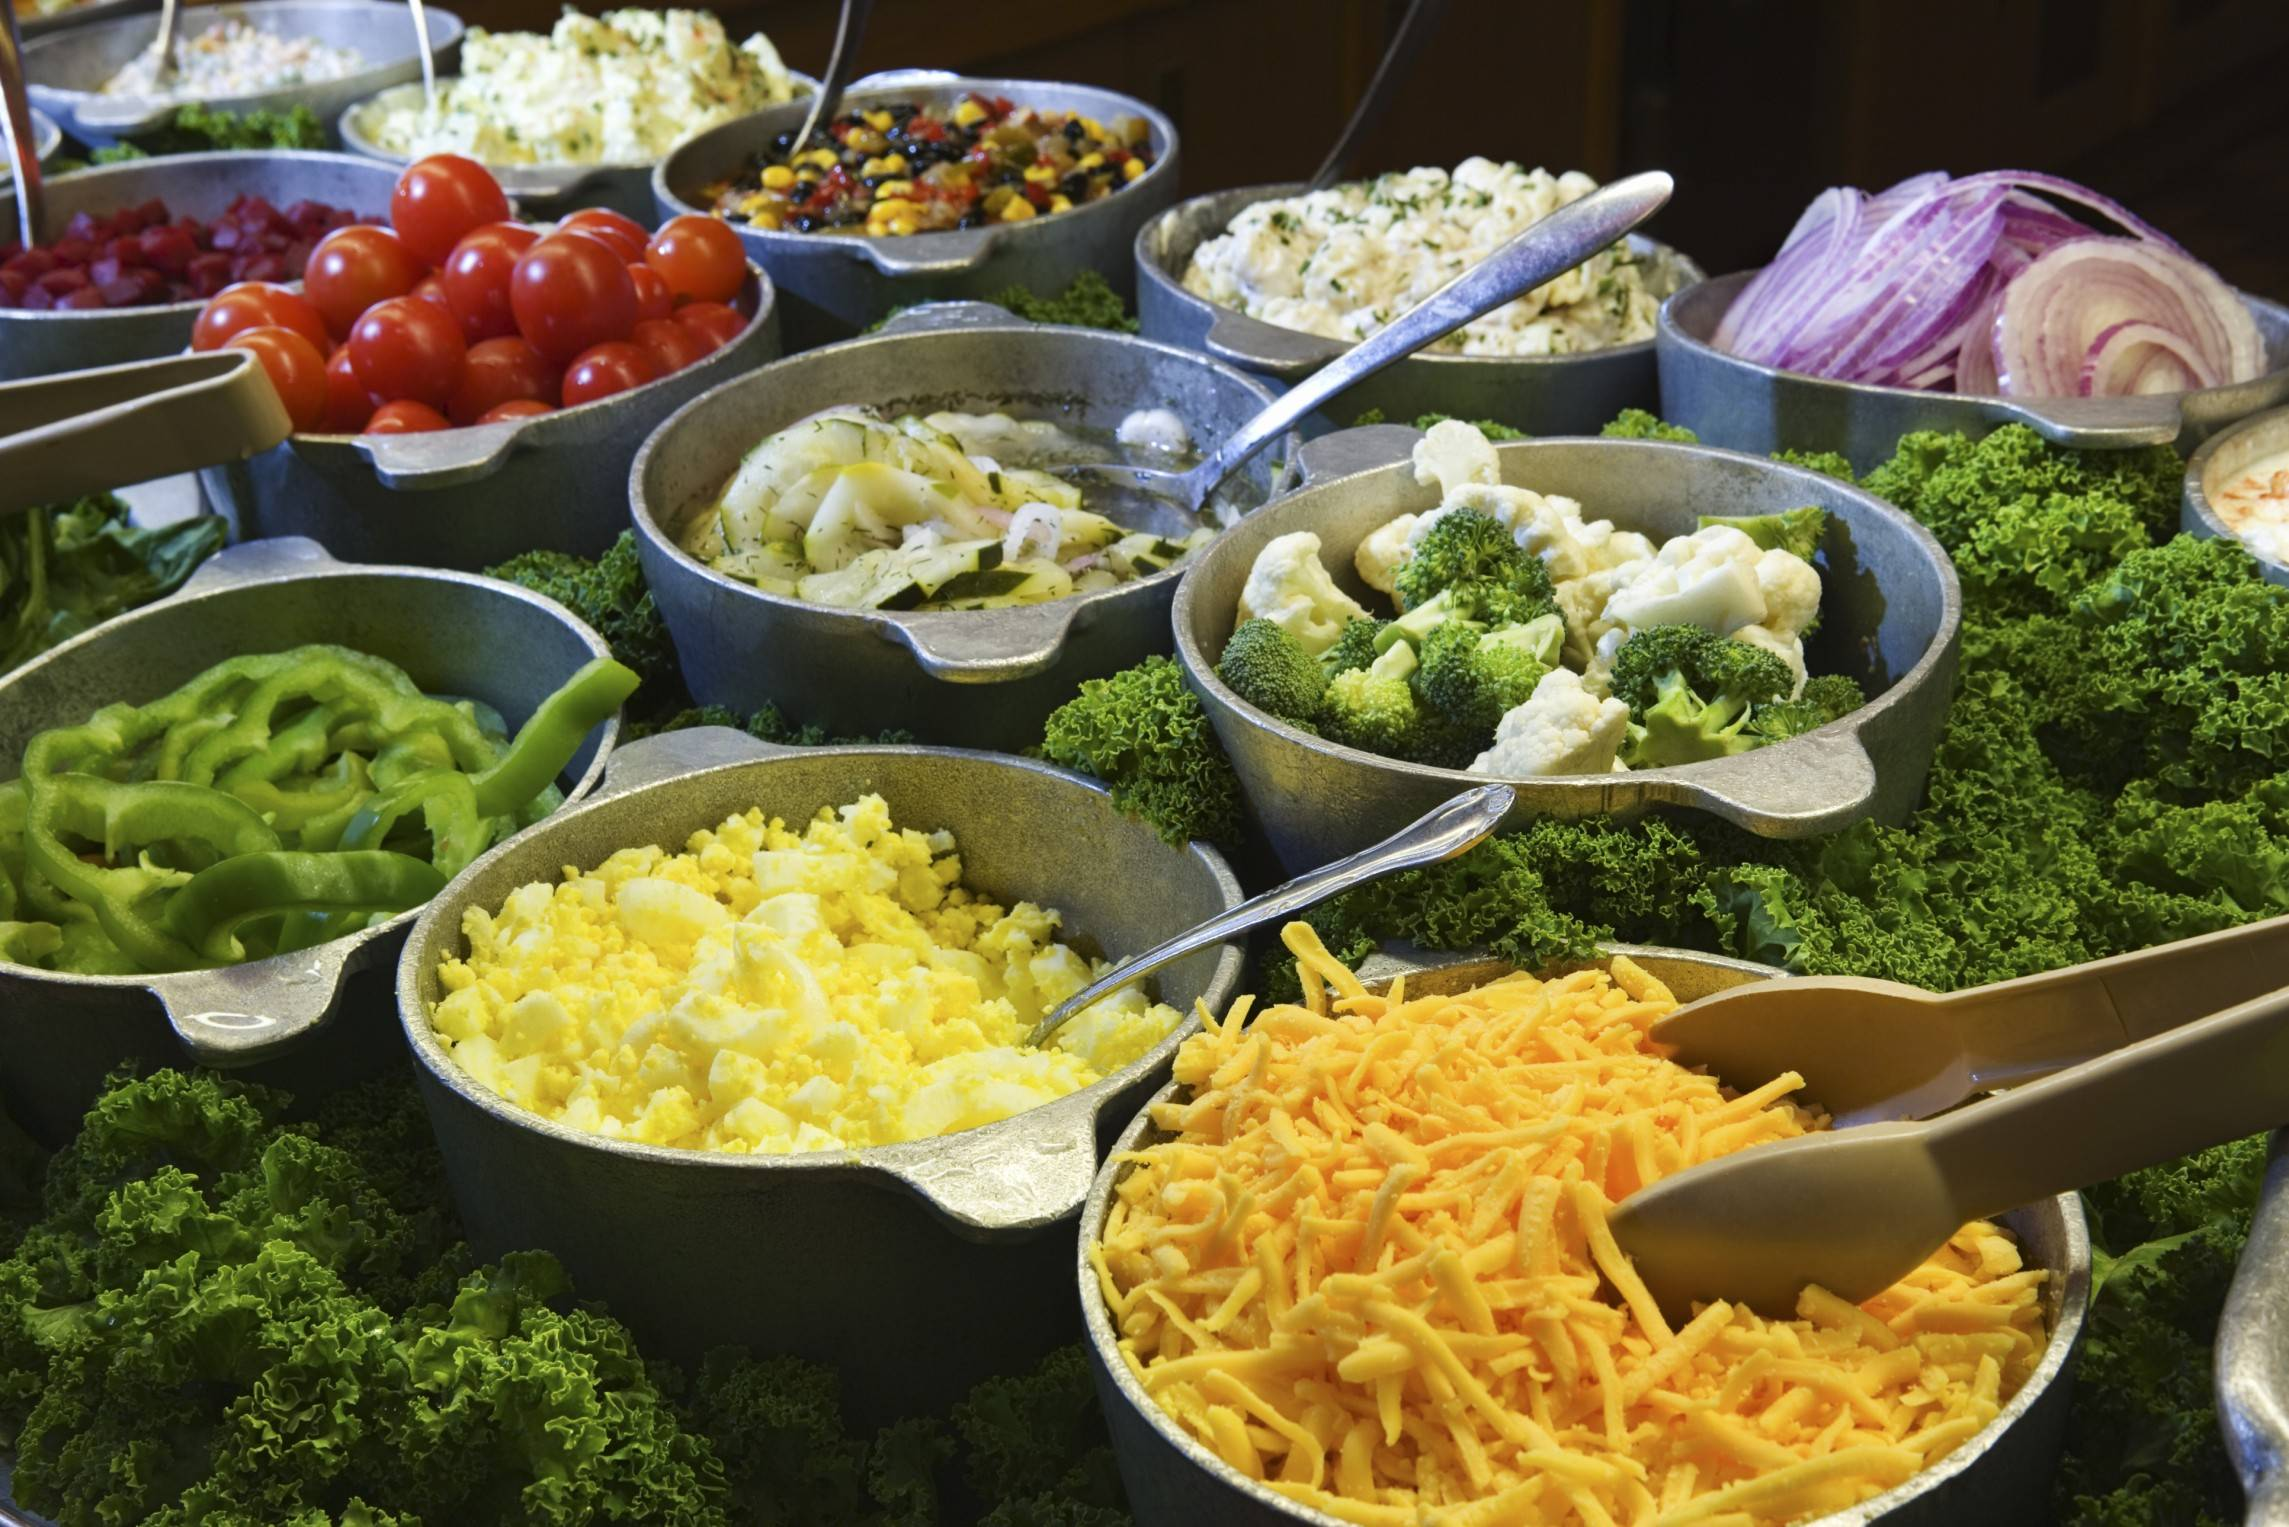 Is a salad bar a healthy choice or a potential disaster? Salad bars can be tricky, experts say, but probably aren't a concern for most healthy people as long as there is a clean and well-kept sneeze guard in place.